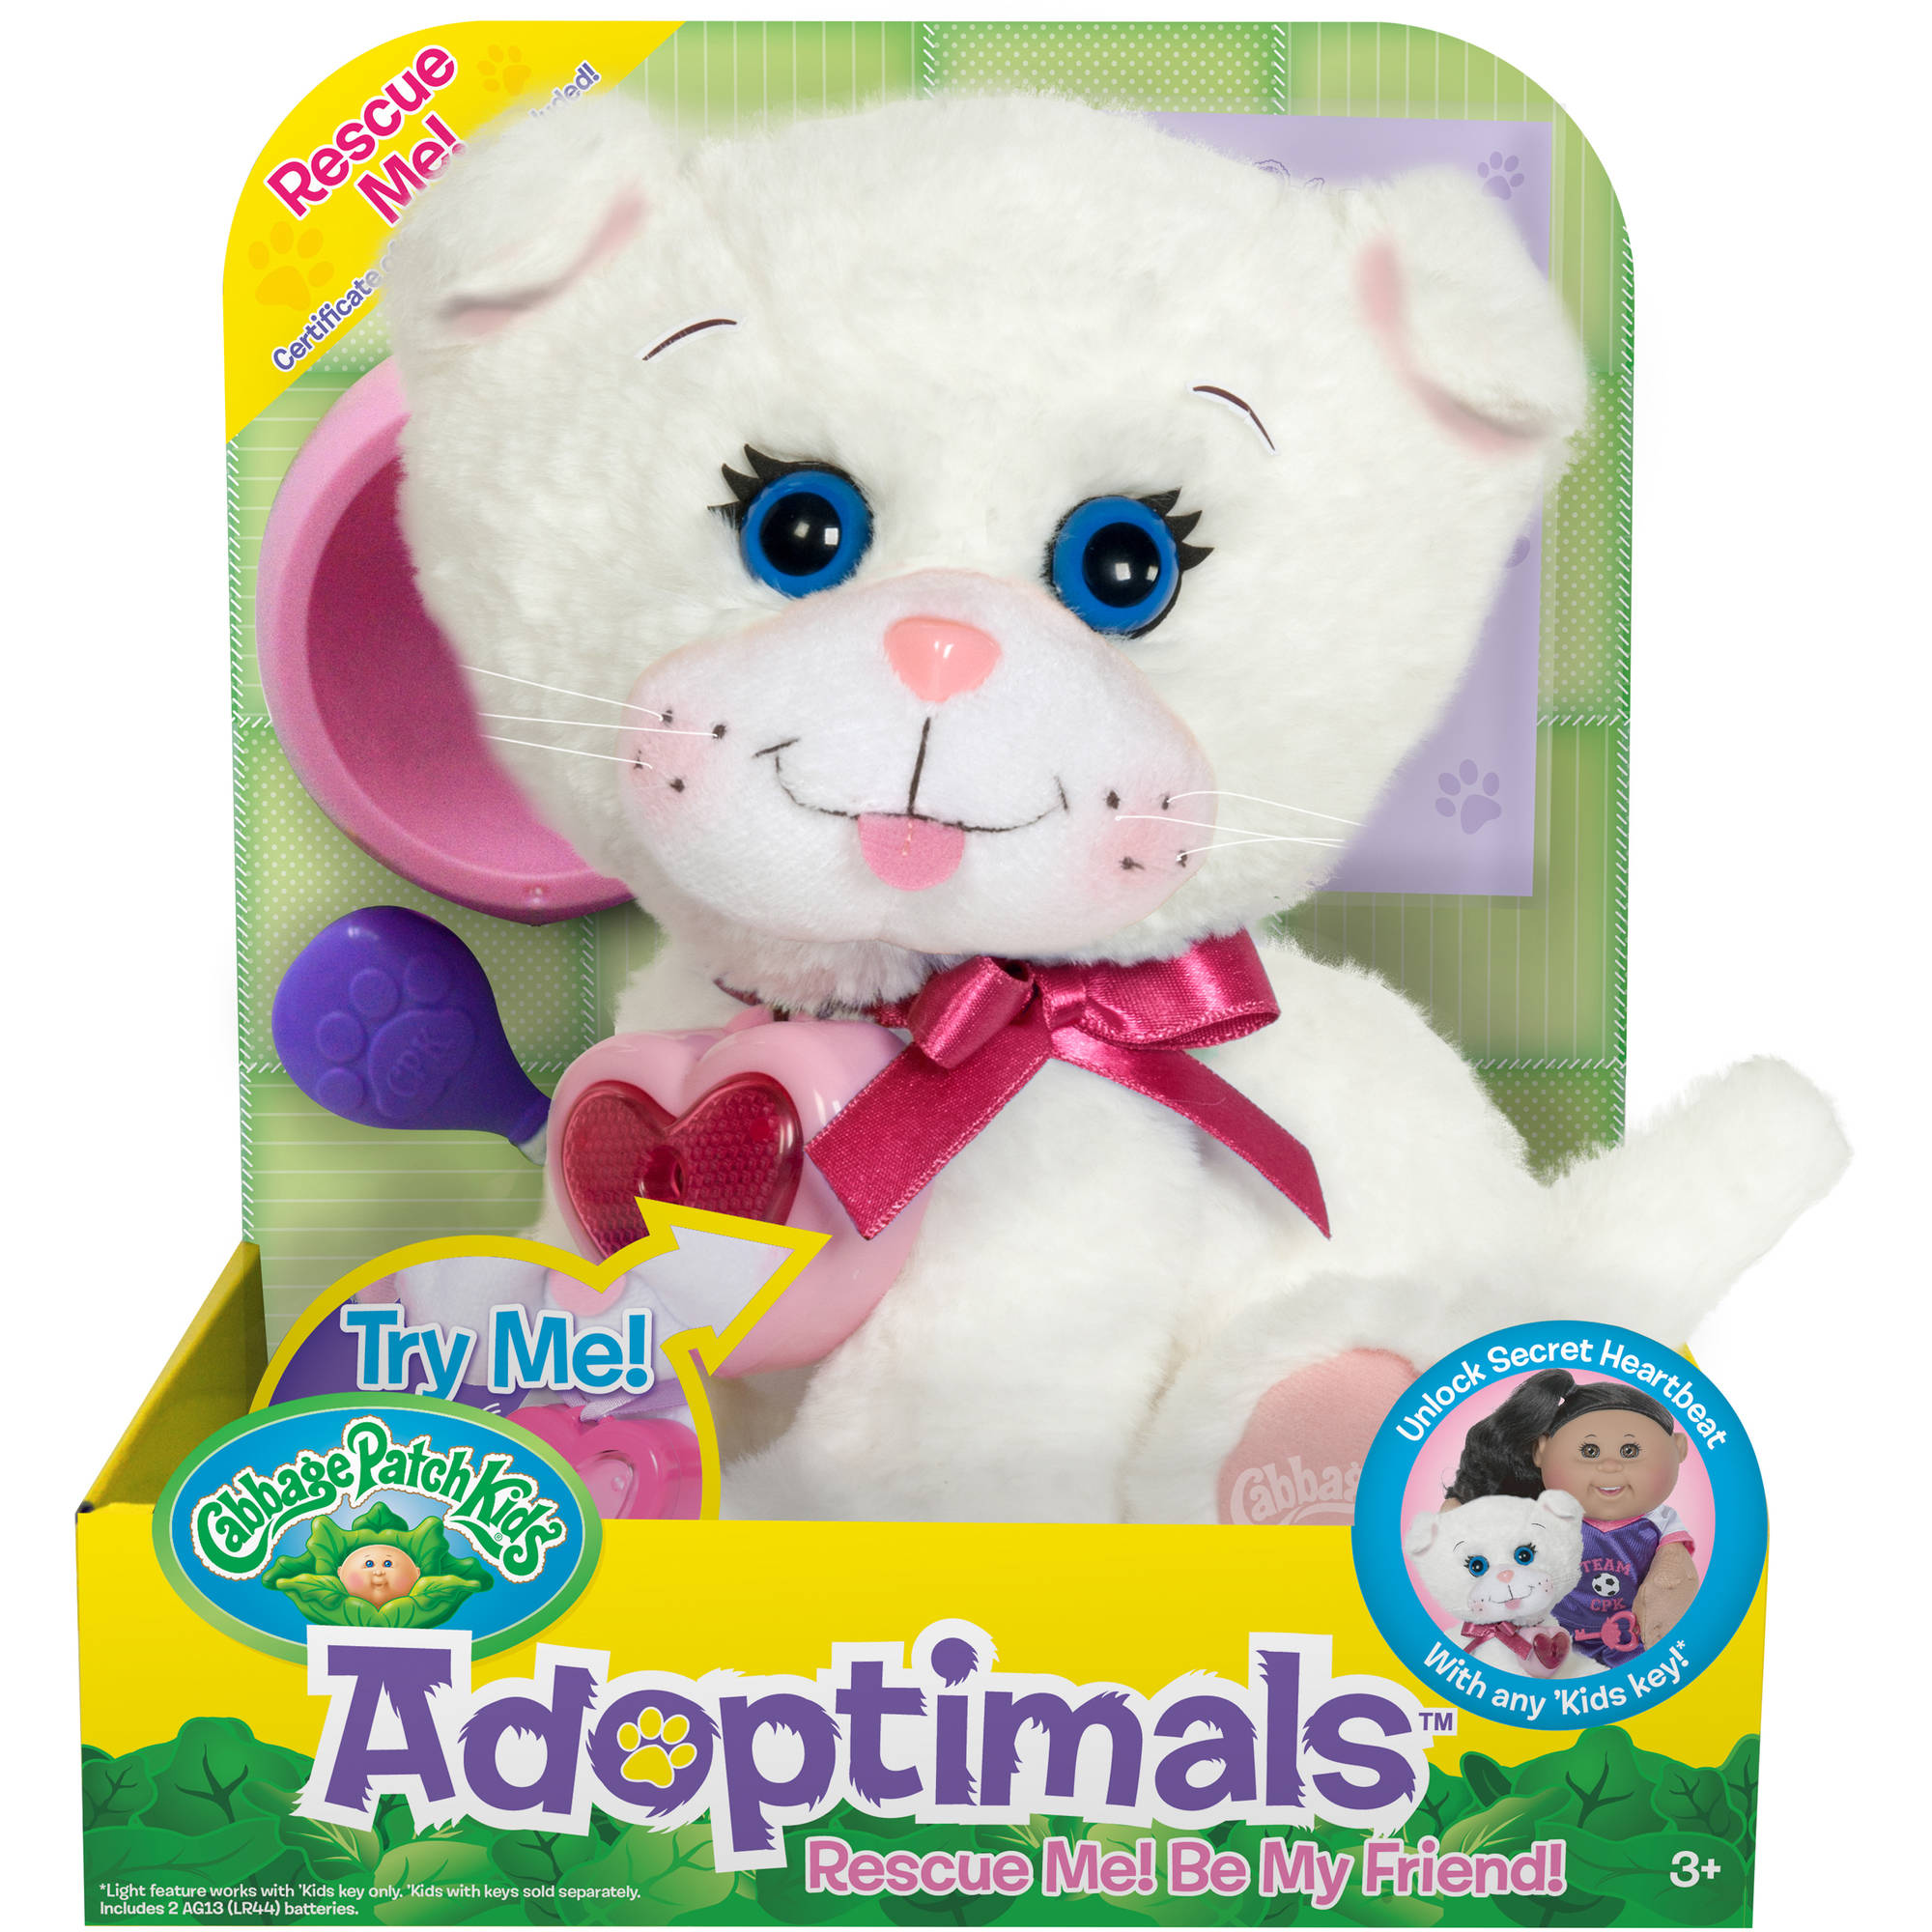 Cabbage Patch Kids Adoptimals White Kitty by Duohong Toys (Shenzhen) Co., Ltd.